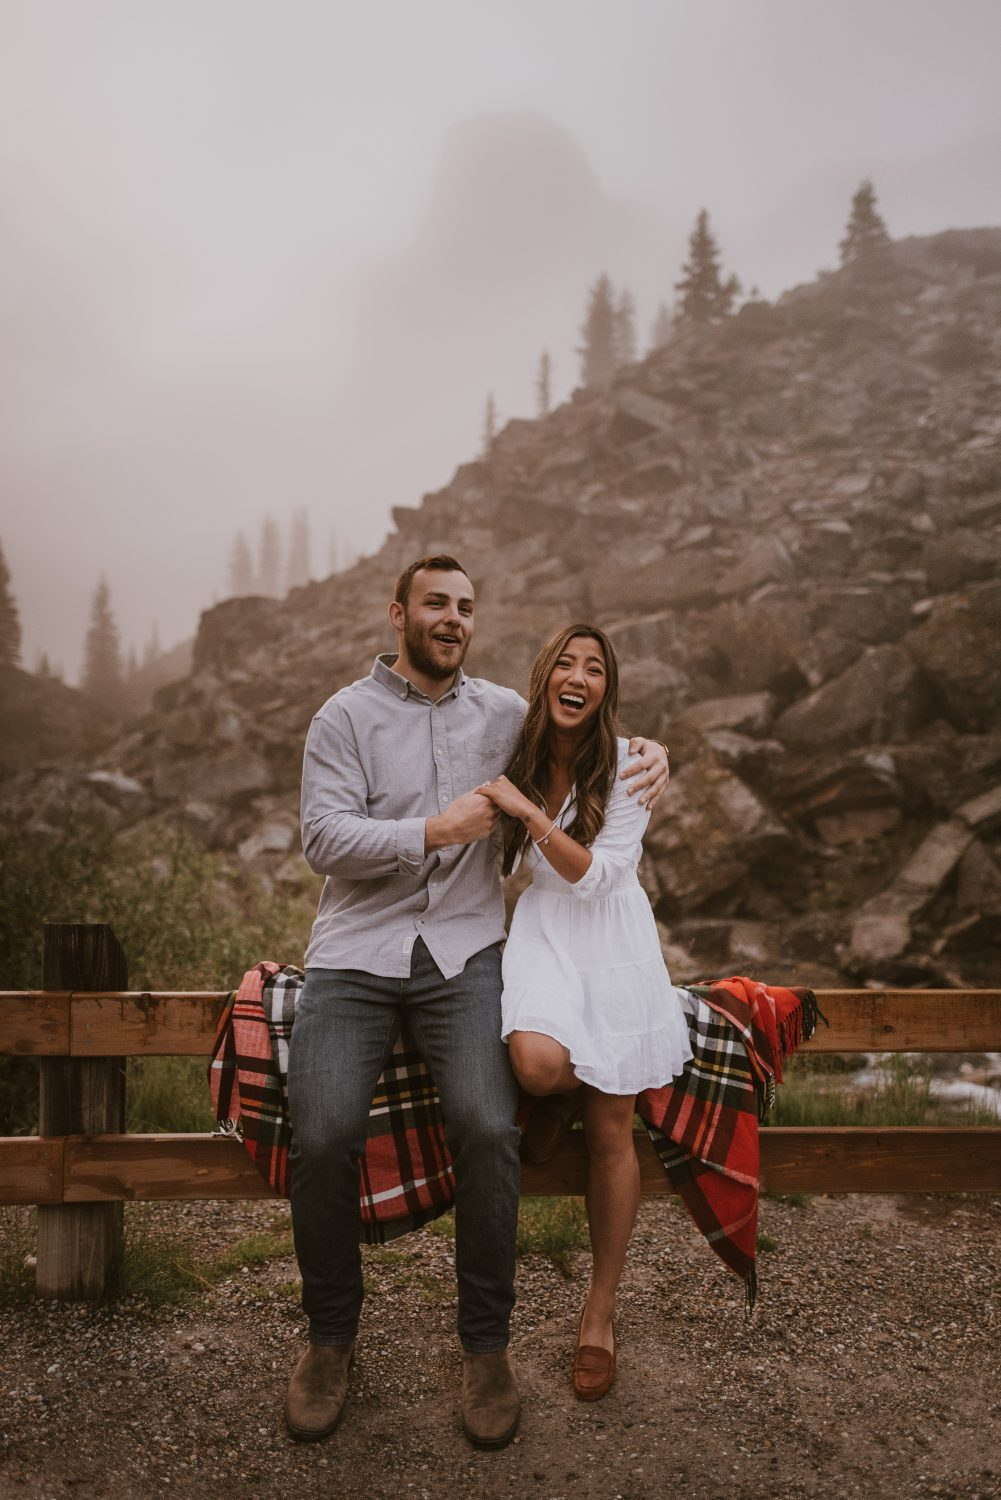 Couple sitting on a fence with mountains in the background